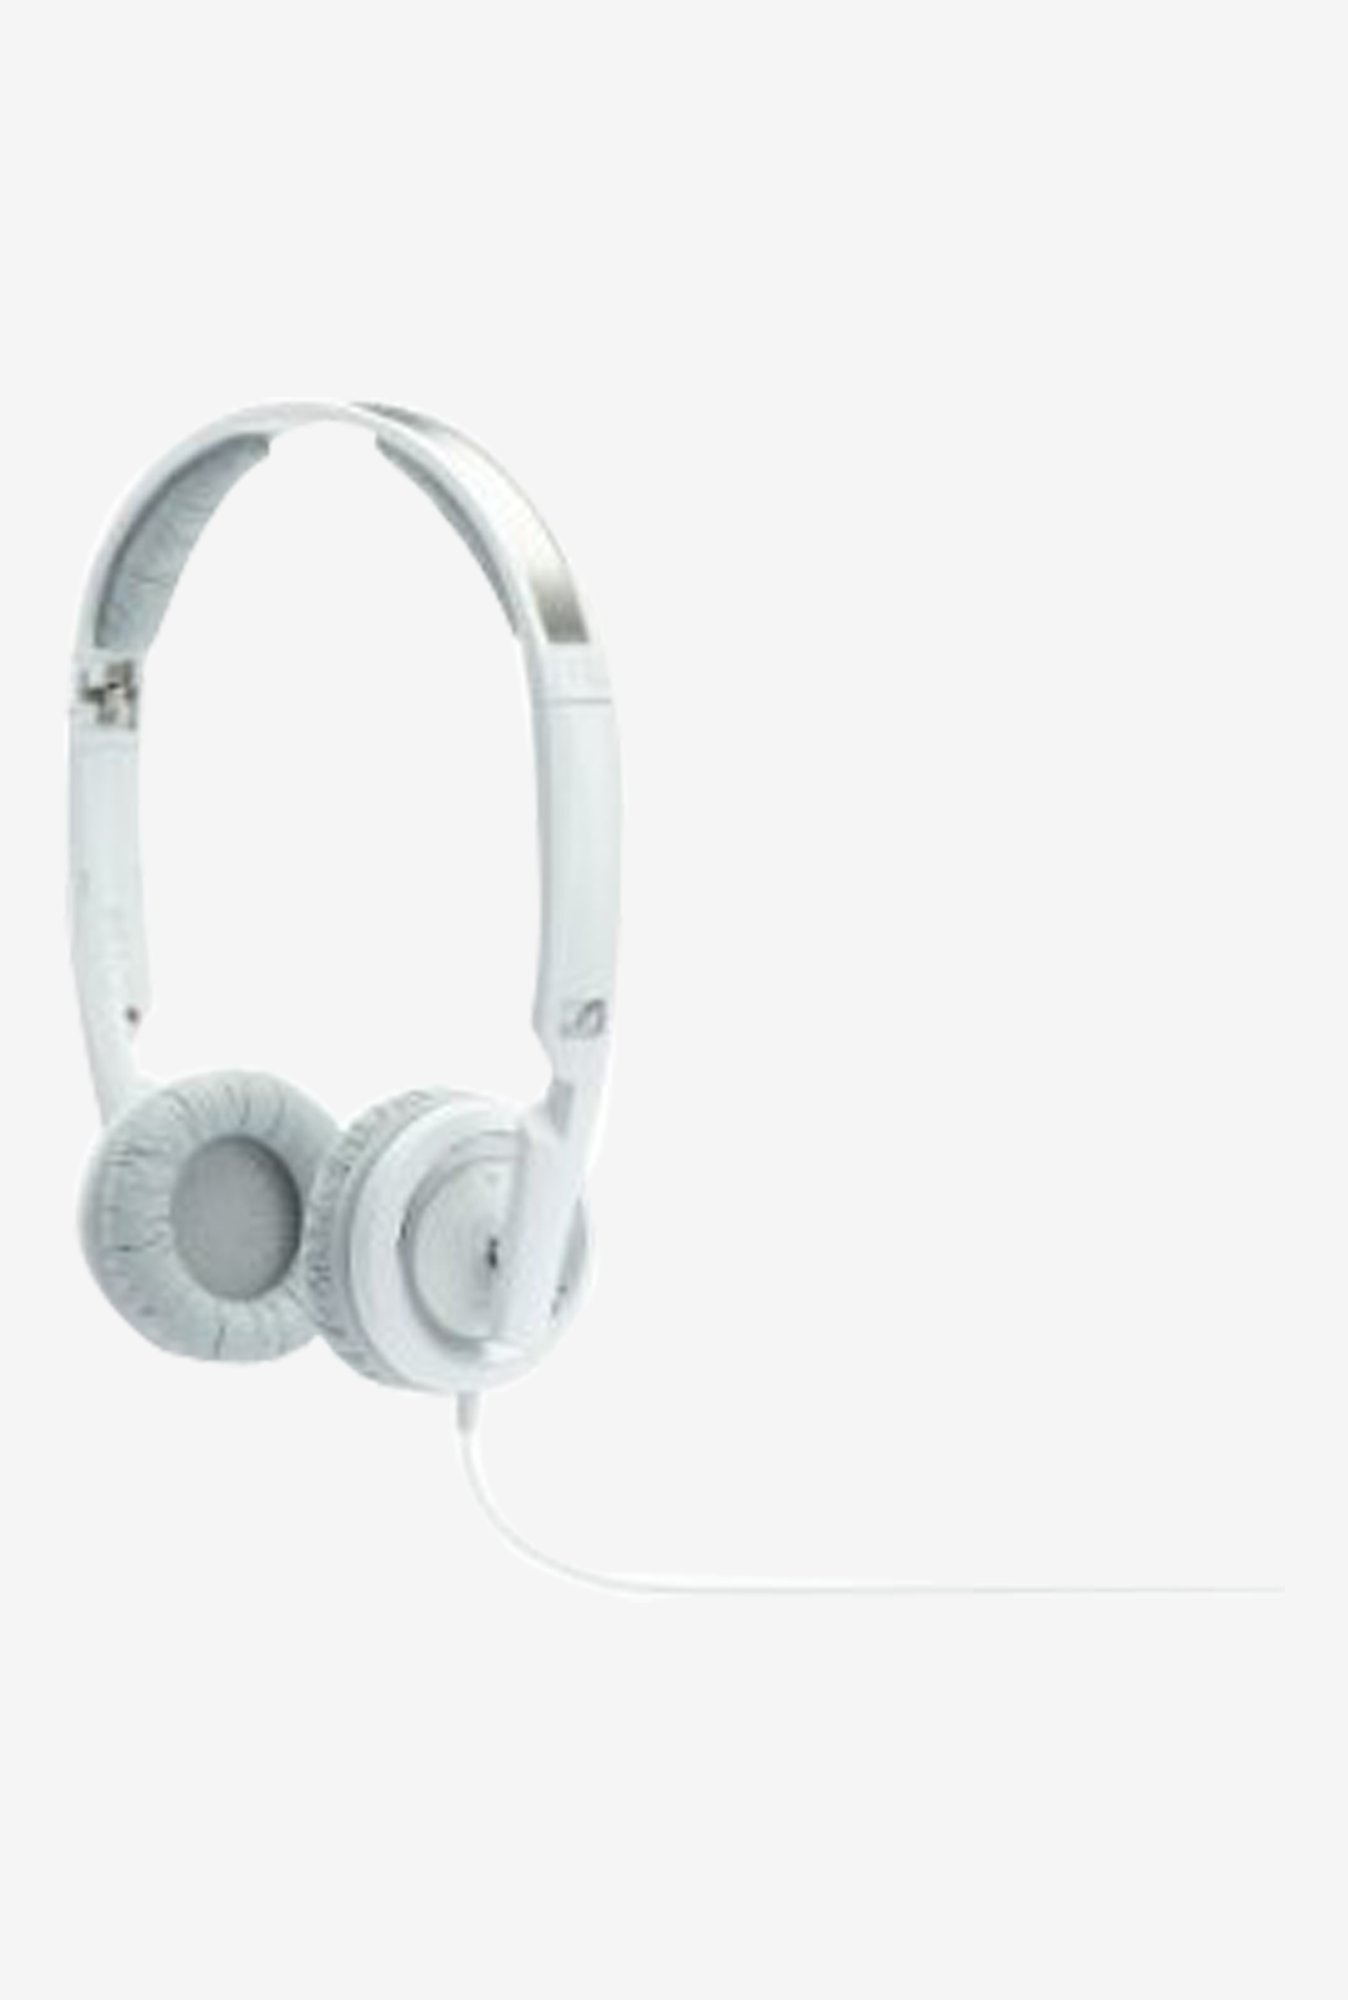 Sennheiser PX 200 II Foldable Mini On-Ear Headphone (White)